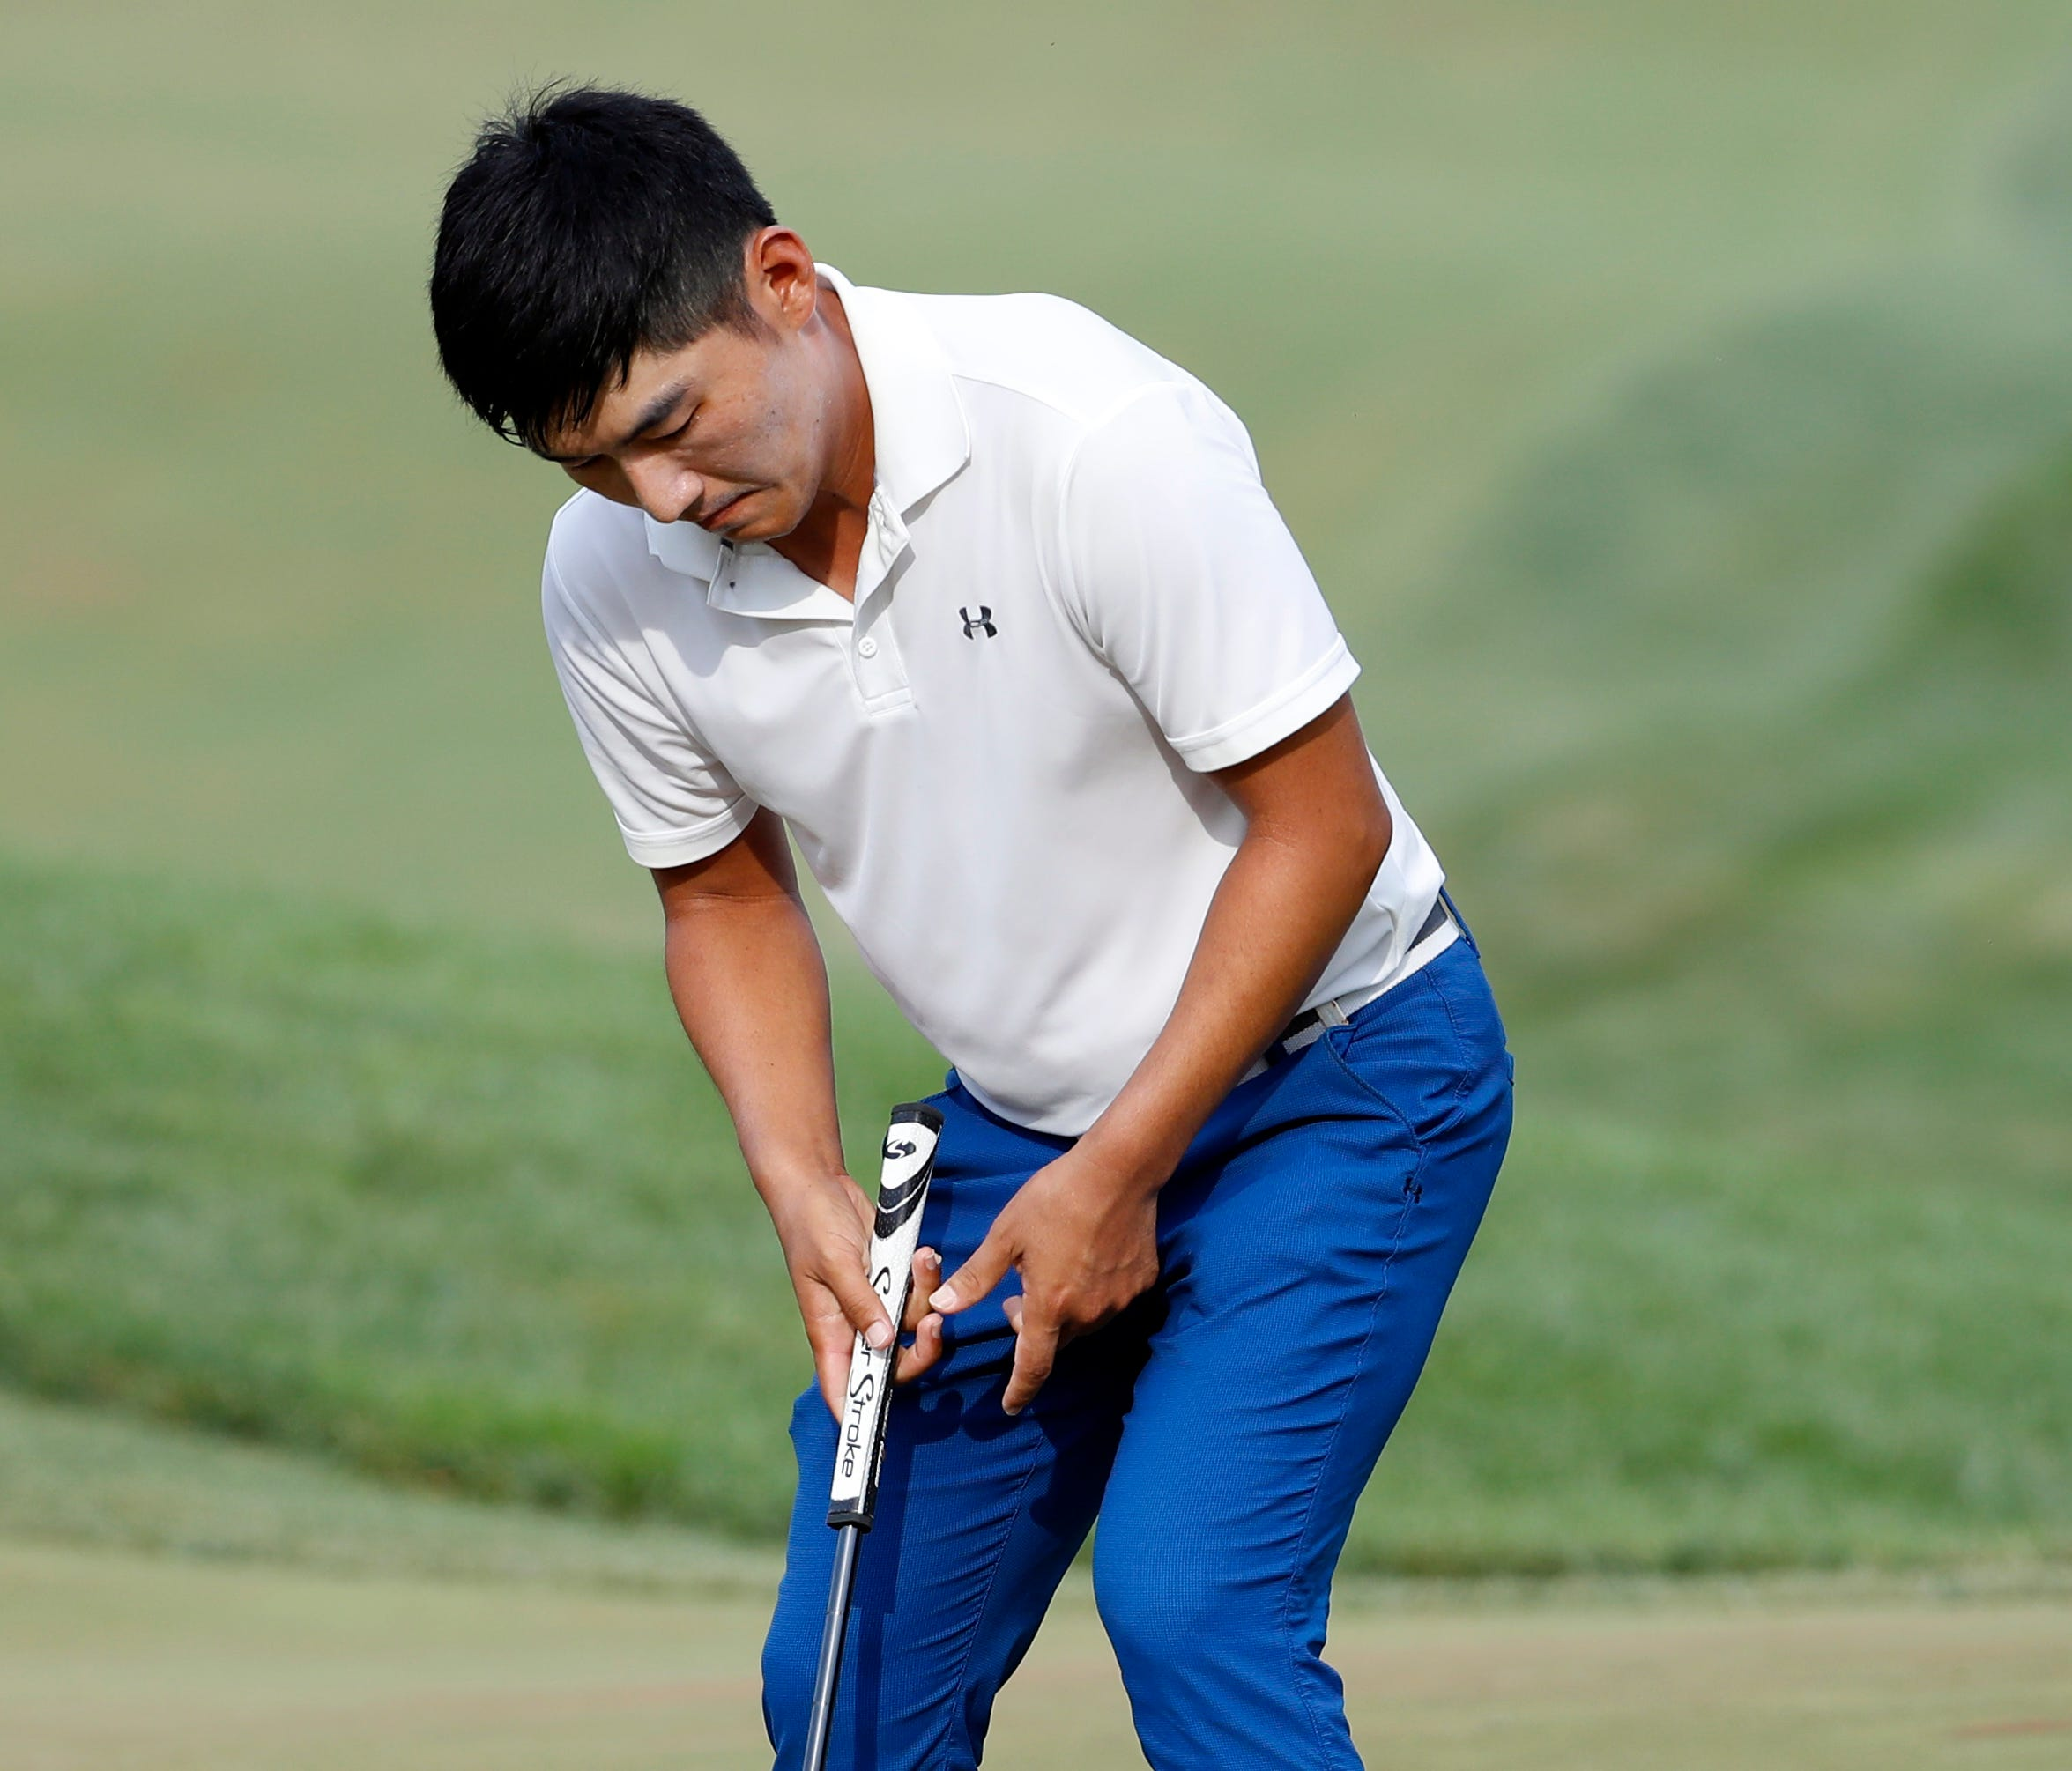 Sung Kang, from Korea, sinks his putt on the 18th hole during the Quicken Loans National golf tournament, Sunday, July 2, 2017, in Potomac, Md. Kyle Stanley won in a playoff. (AP Photo/Alex Brandon)